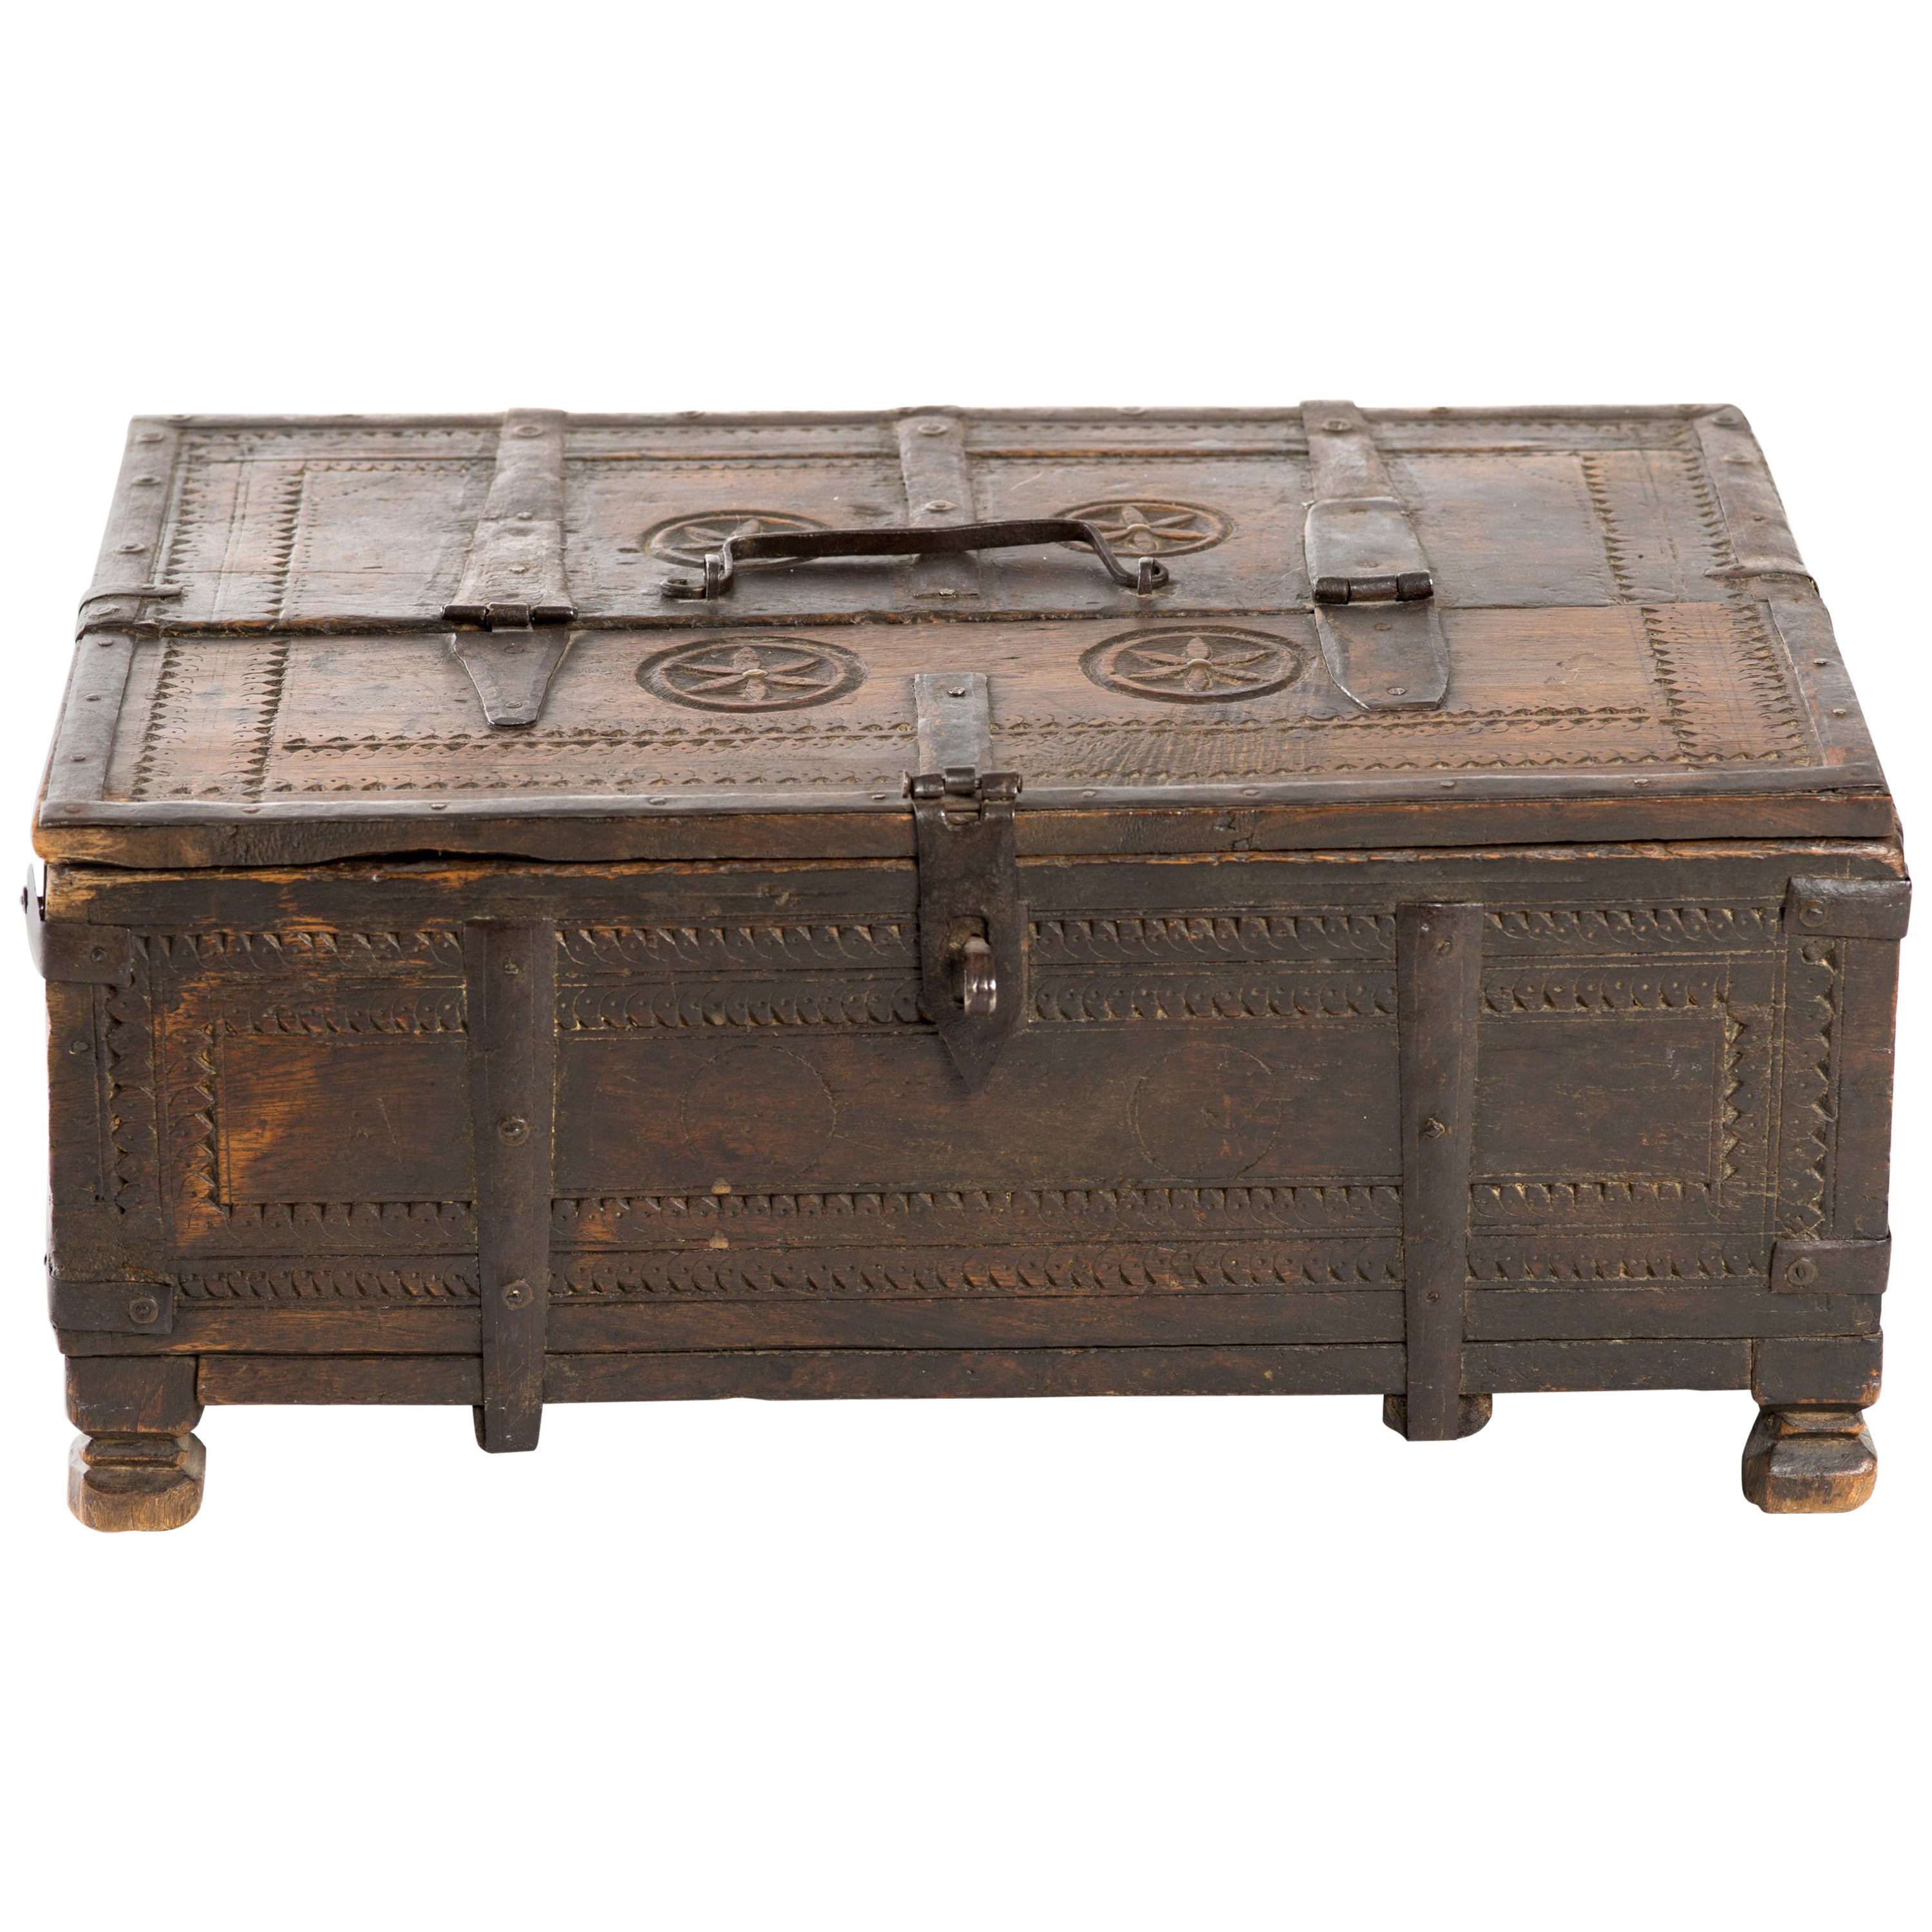 Early 20th Century Indian Carved Wood & Wrought Iron Storage Chest Box